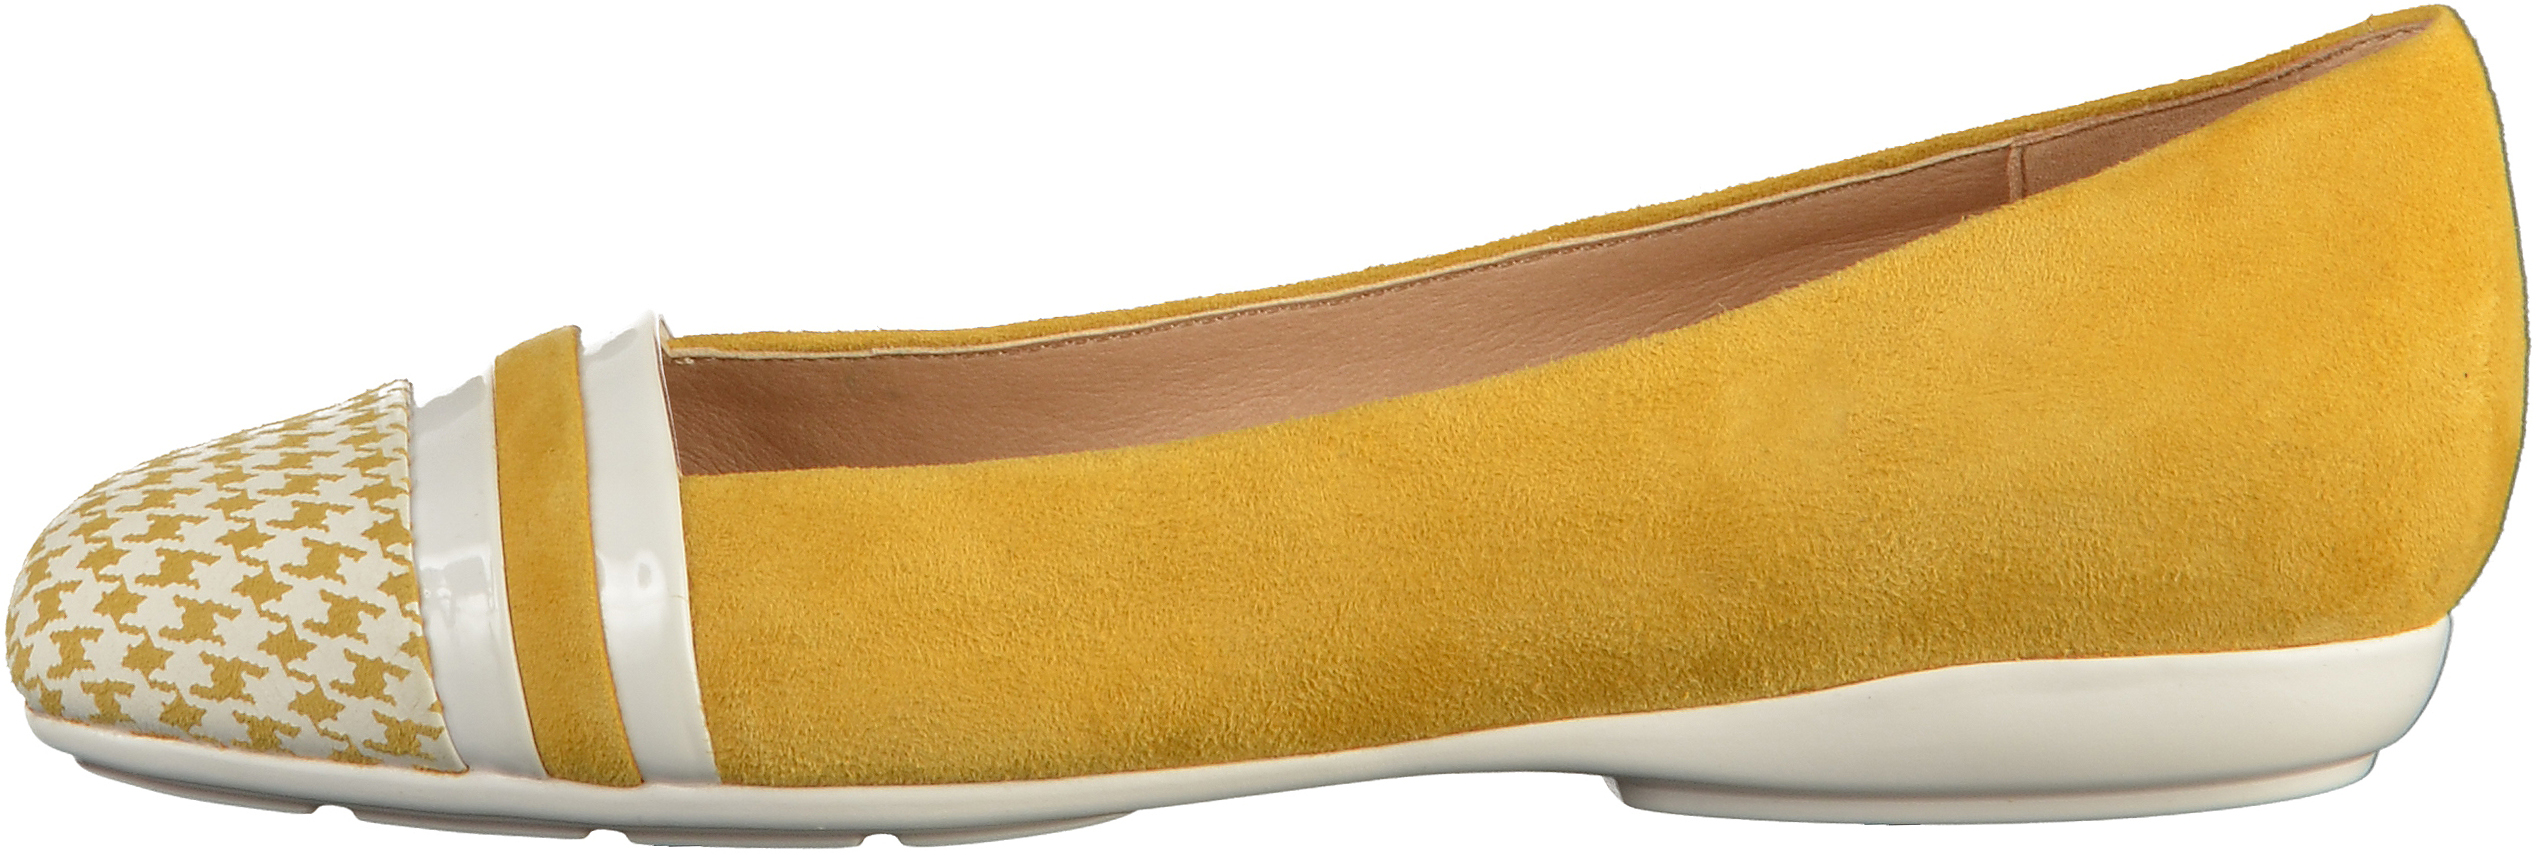 Geox Ballerinas Suede leather Yellow